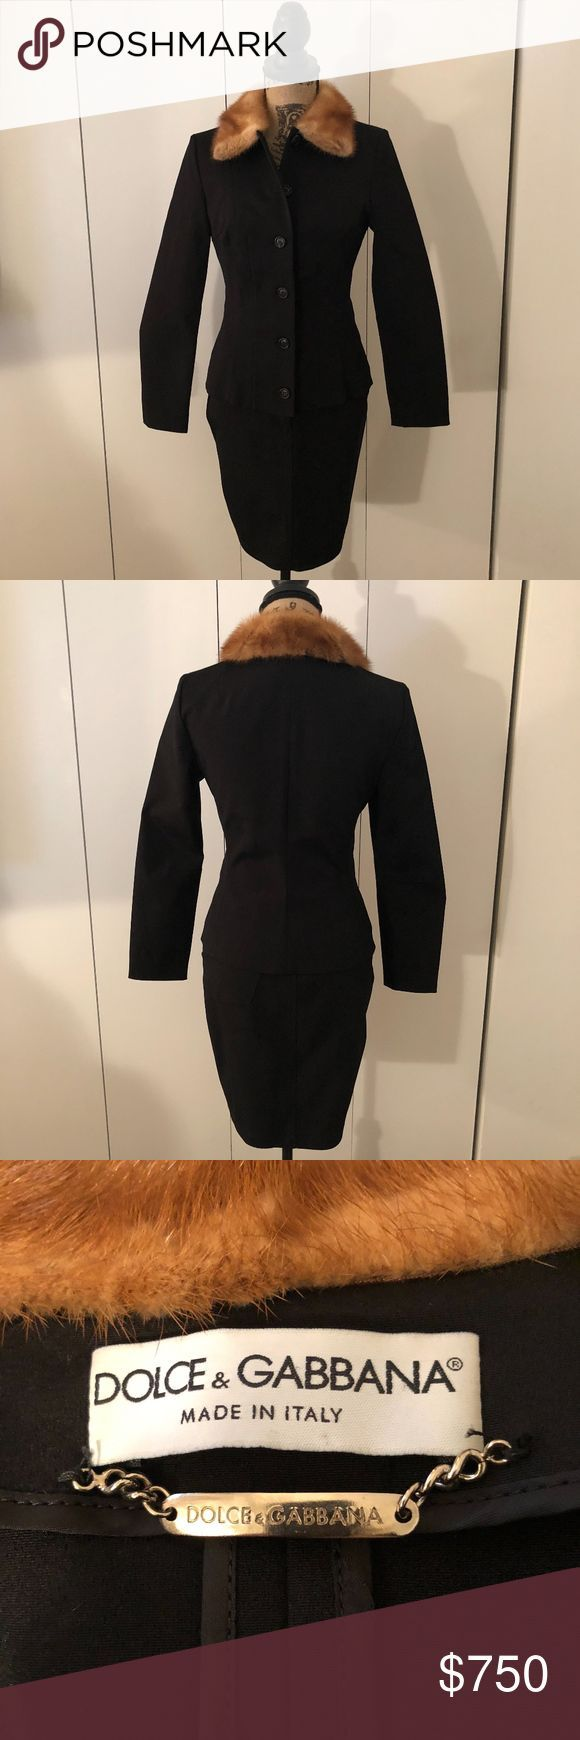 Vintage Dolce & Gabbana Suit with Fur Collar Chic vintage Dolce & Gabbana suit w…